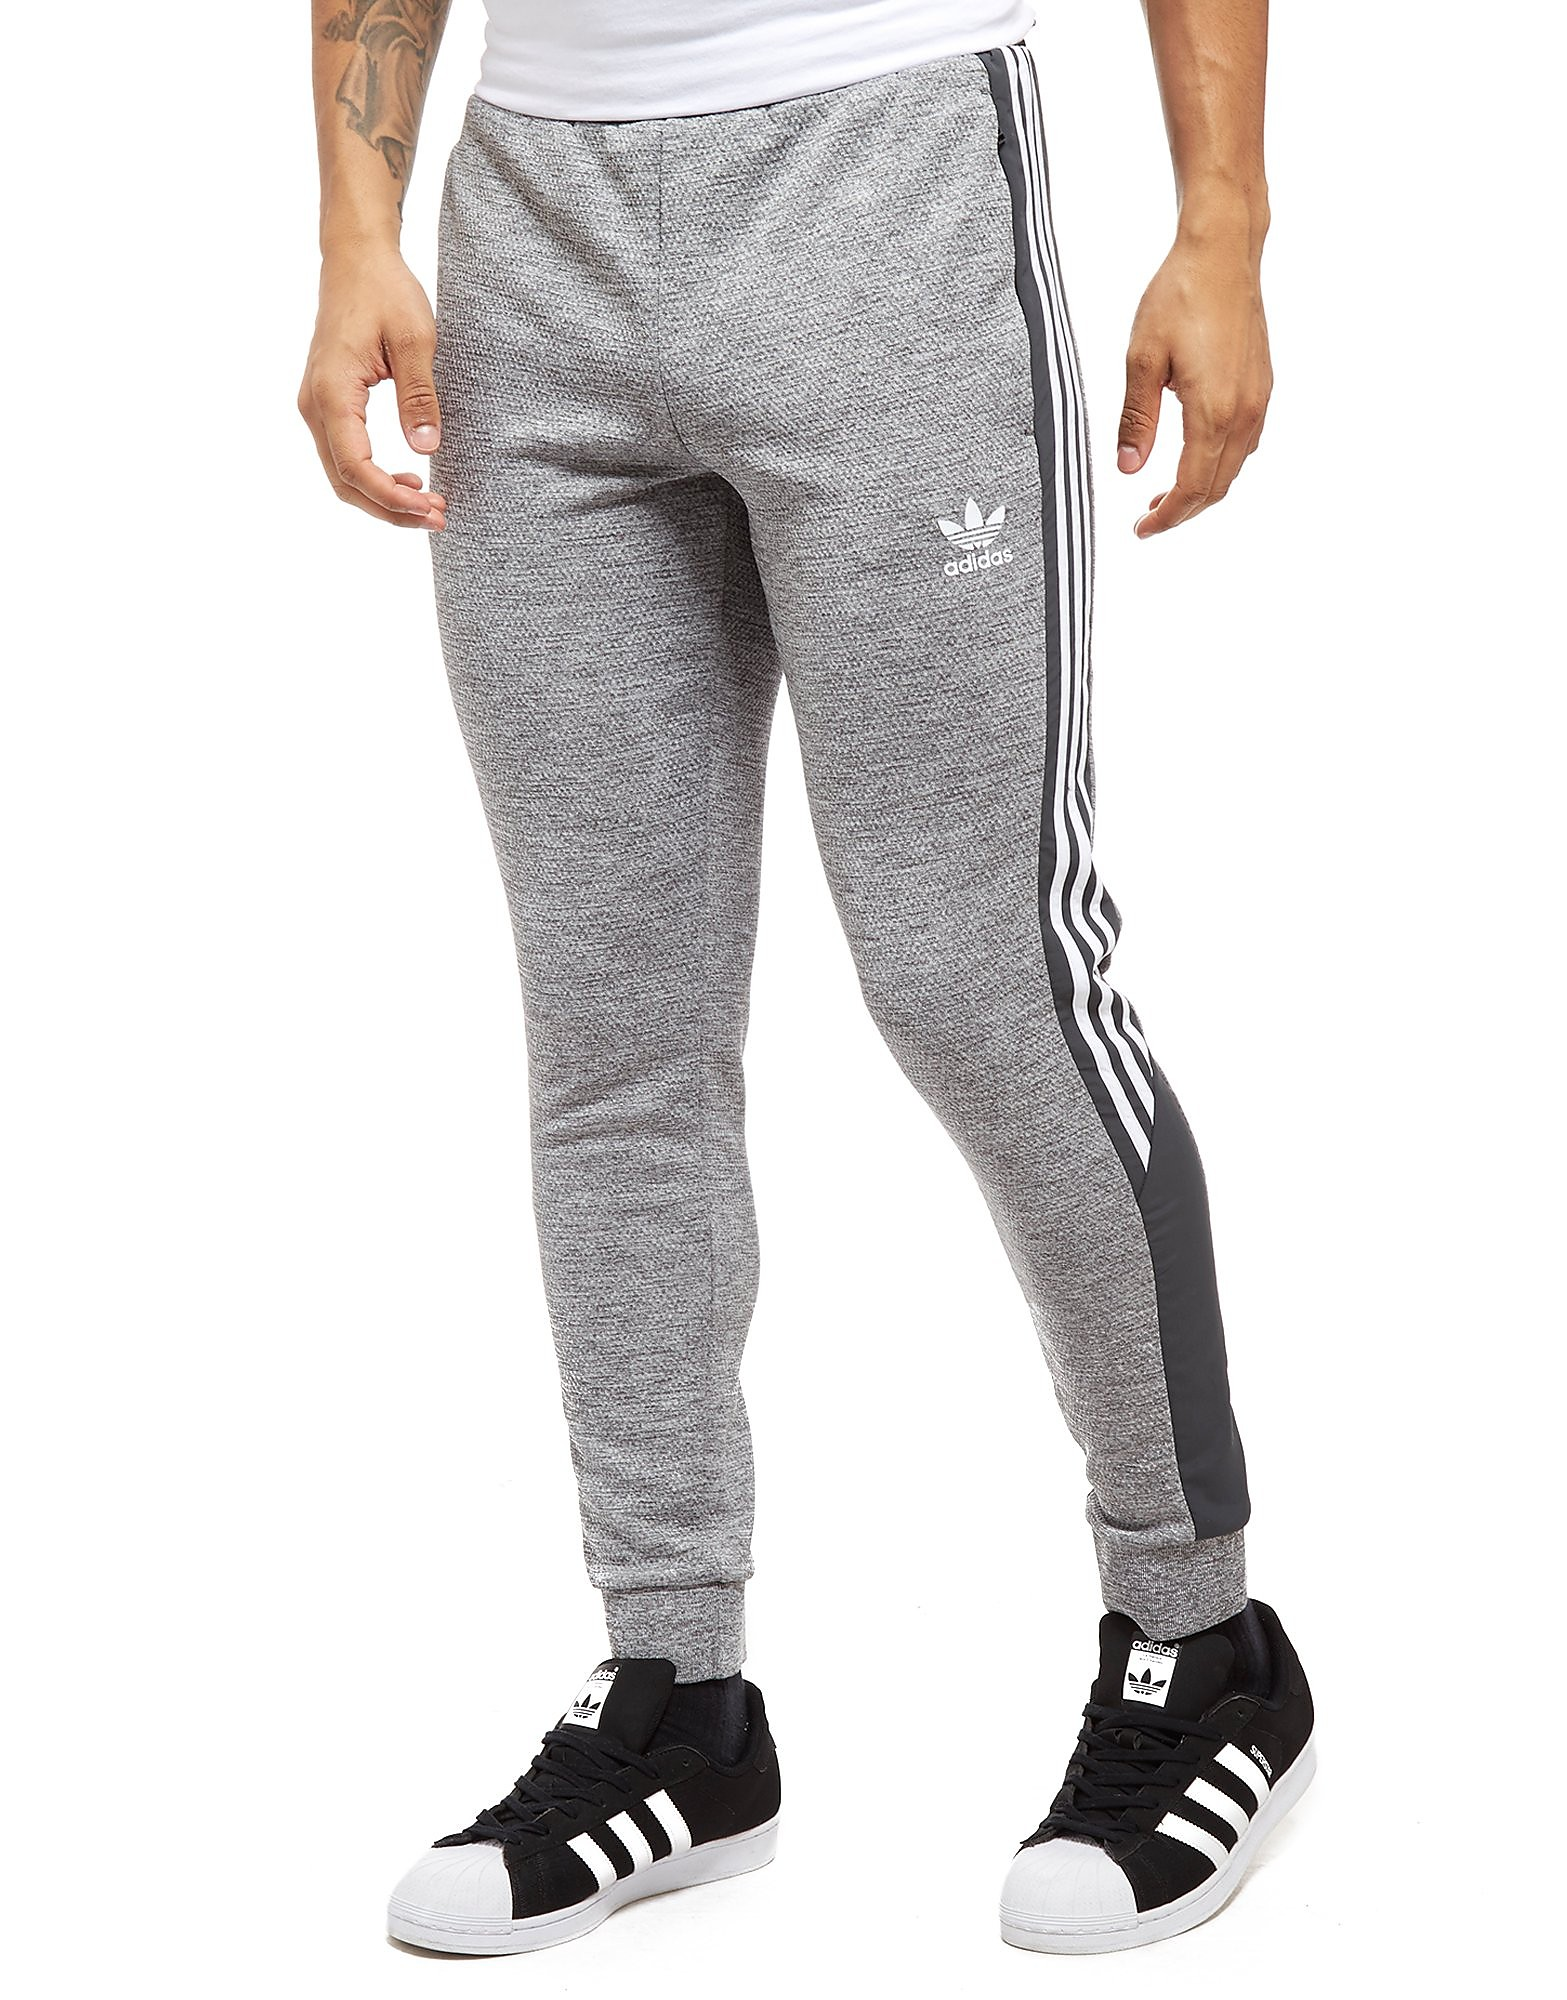 adidas Originals Nova Woven Pants Homme